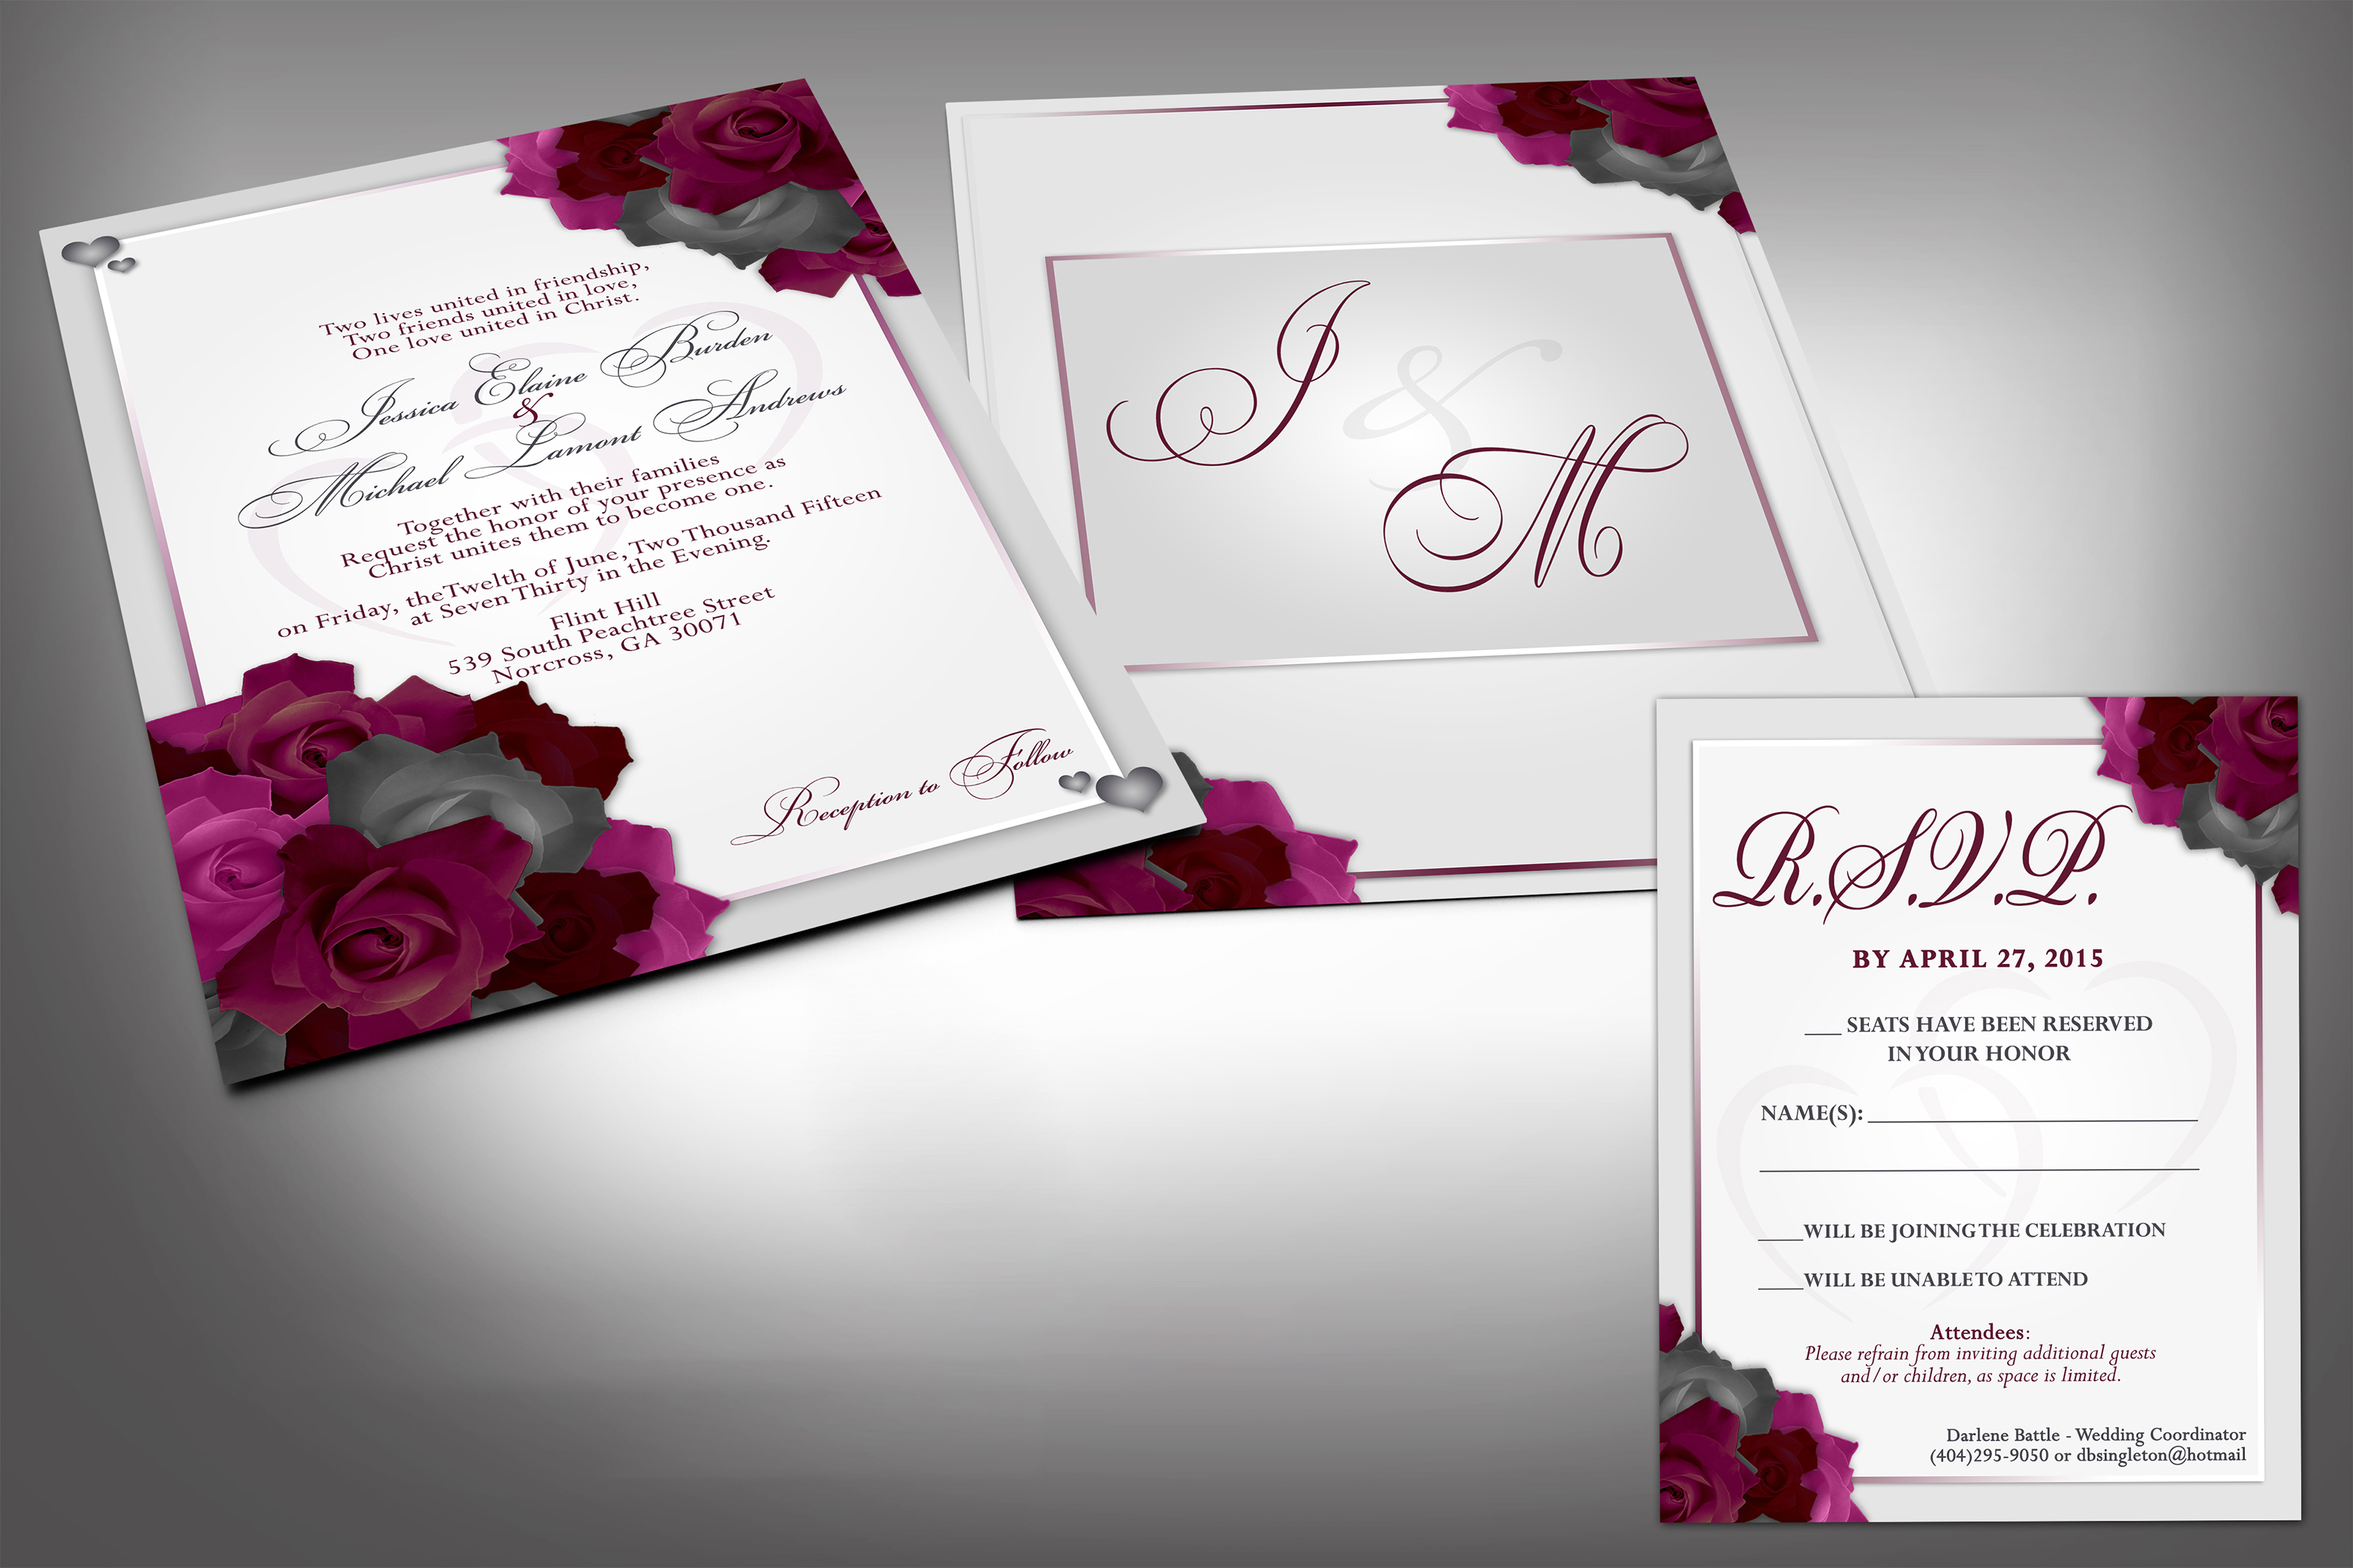 RSVP-&-Wedding-Invitations